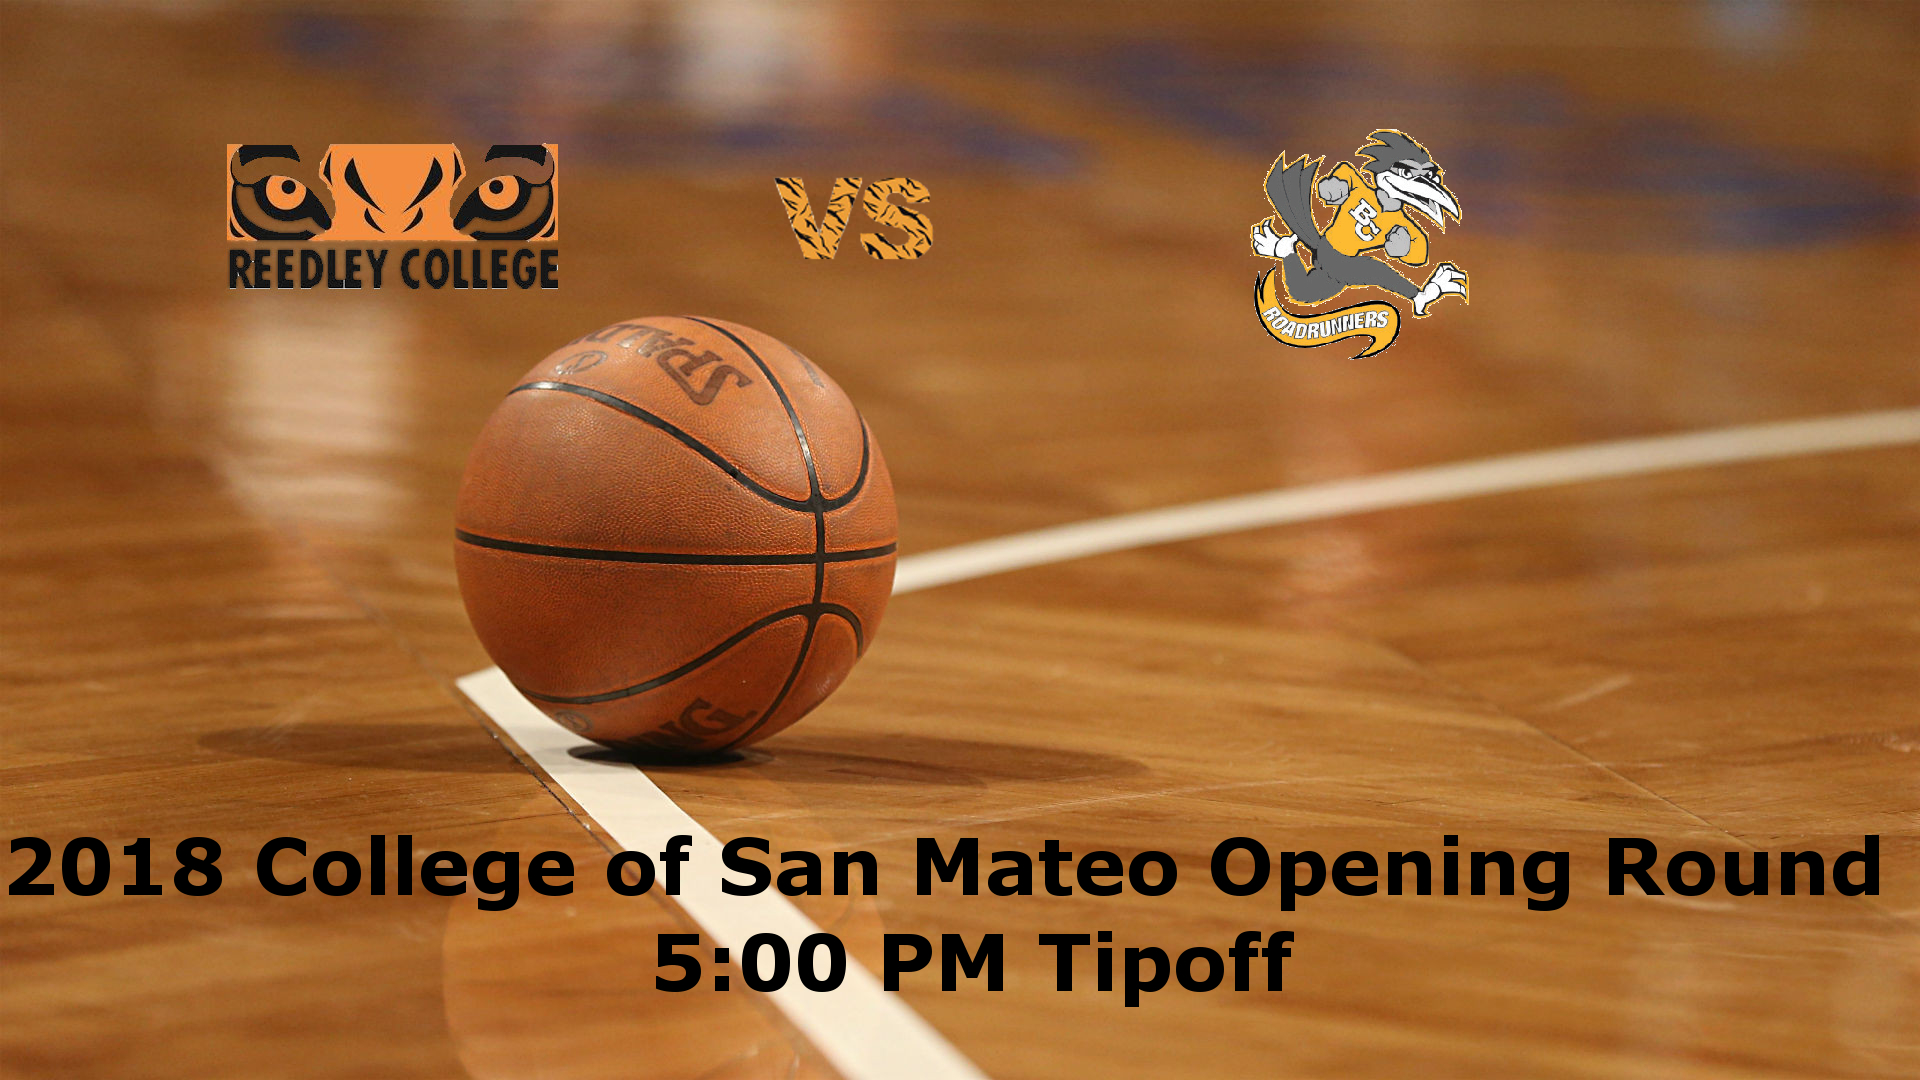 Women's Basketball Faces Butte In Opening Round Of San Mateo Tournament